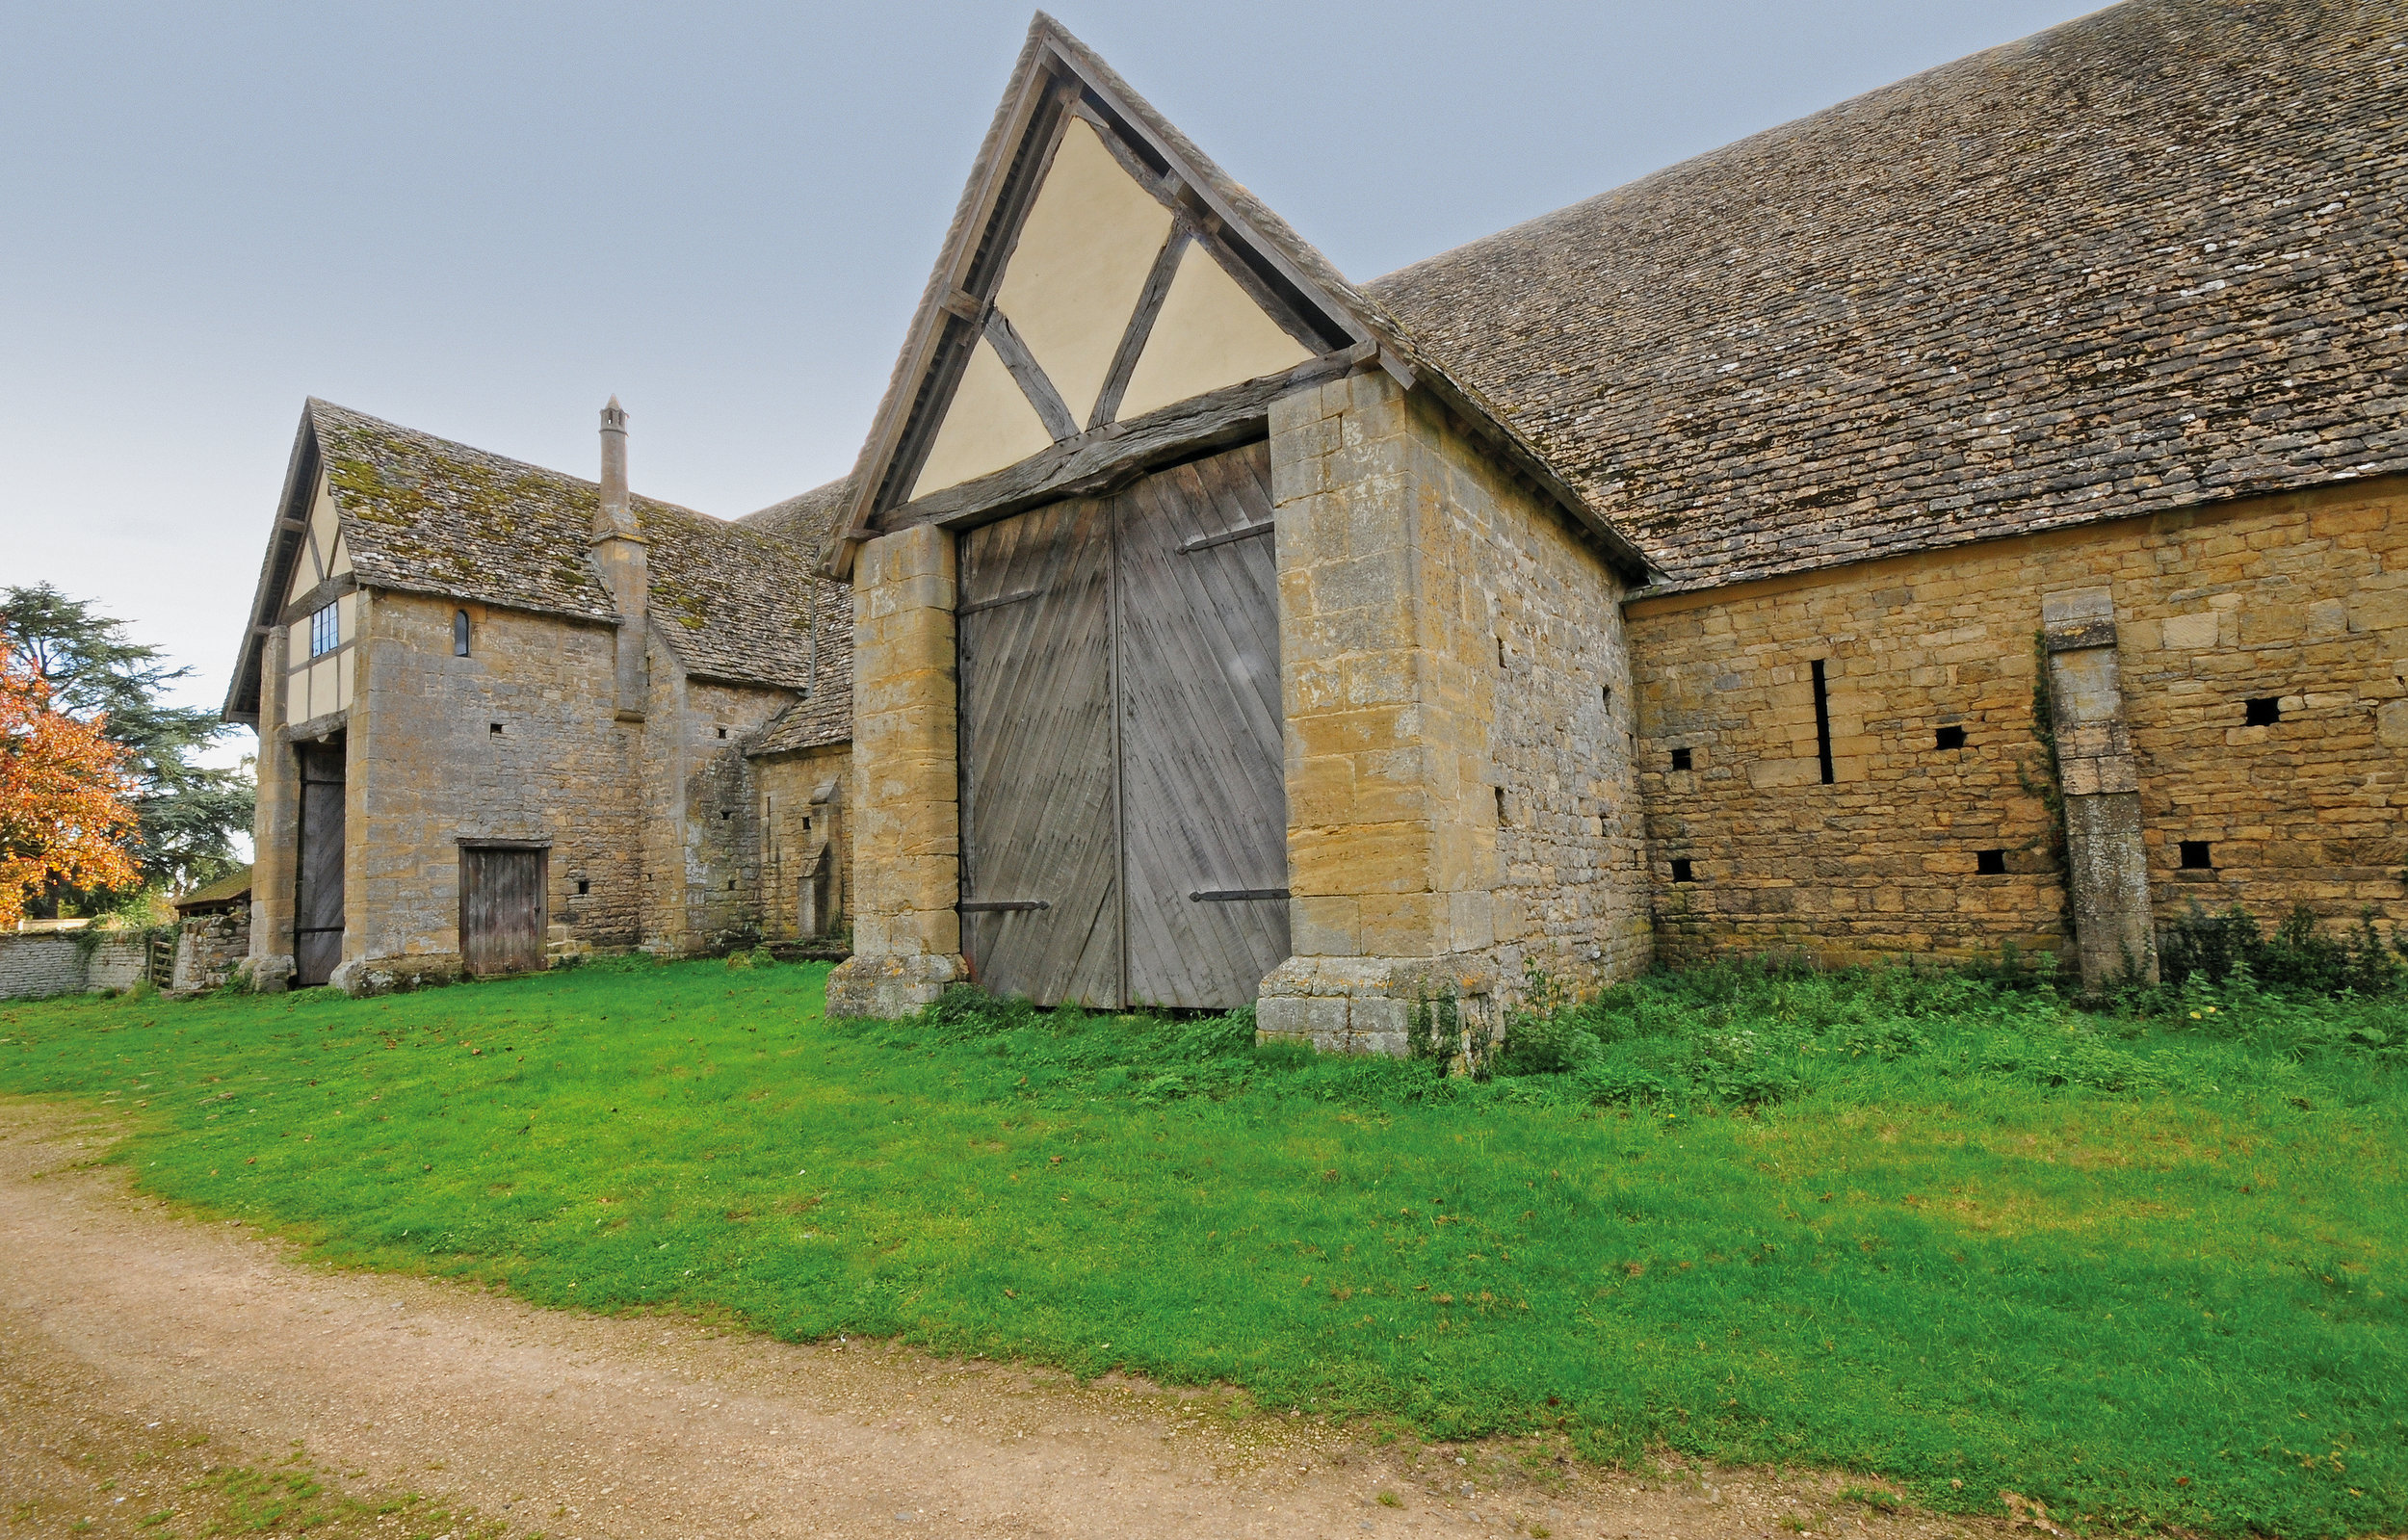 The Entrance, Bredon Tithe Barn, Bredon, Glos., England.jpg